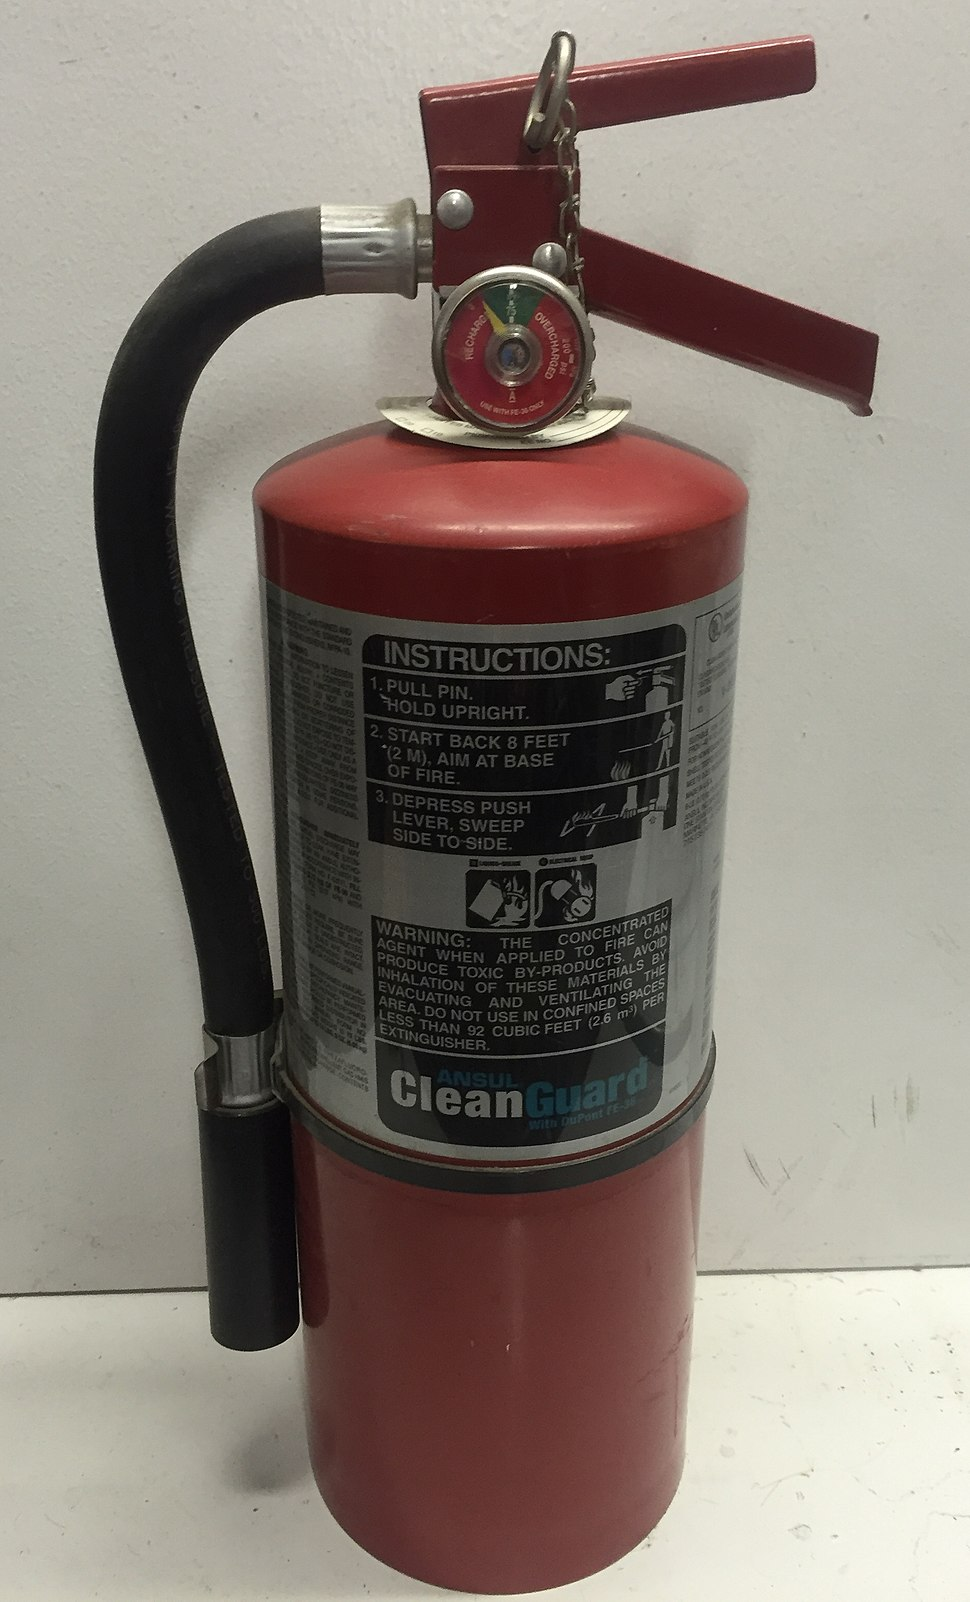 FE-36 Cleanguard fire extinguisher